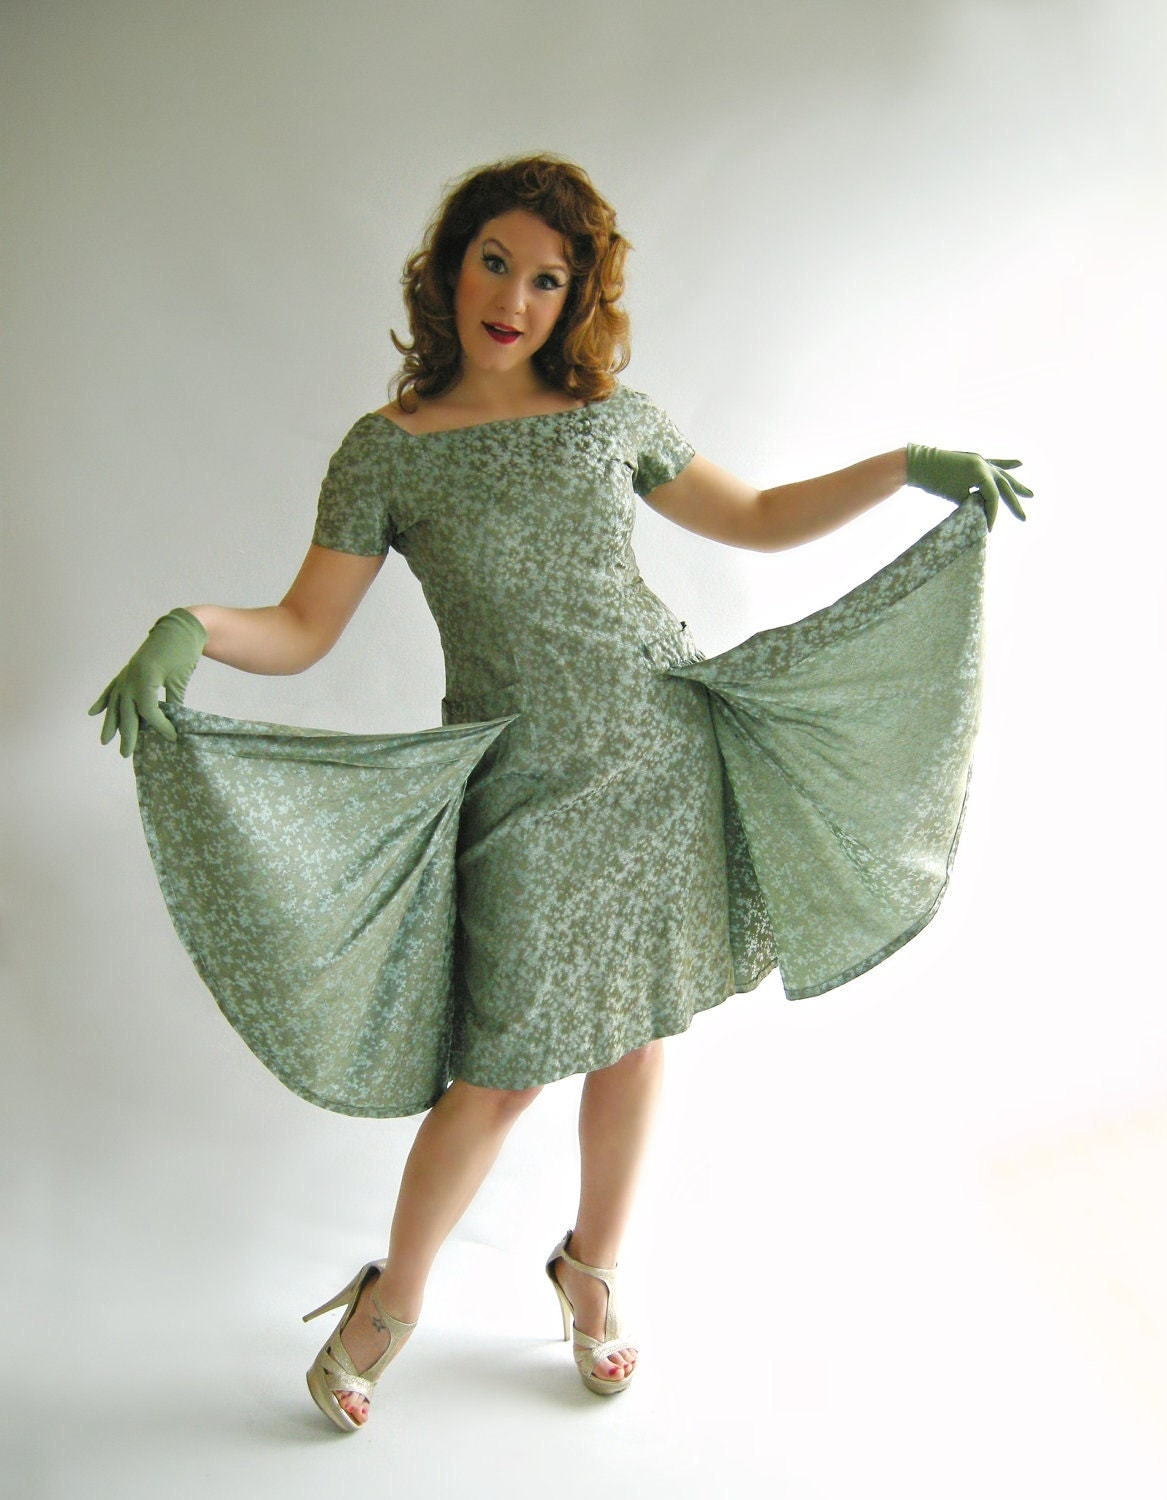 Sage Green Brocade Vintage 1950s Cocktail Dress with Flyaway Panels Fitted Wiggle Bombshell M - empressjade